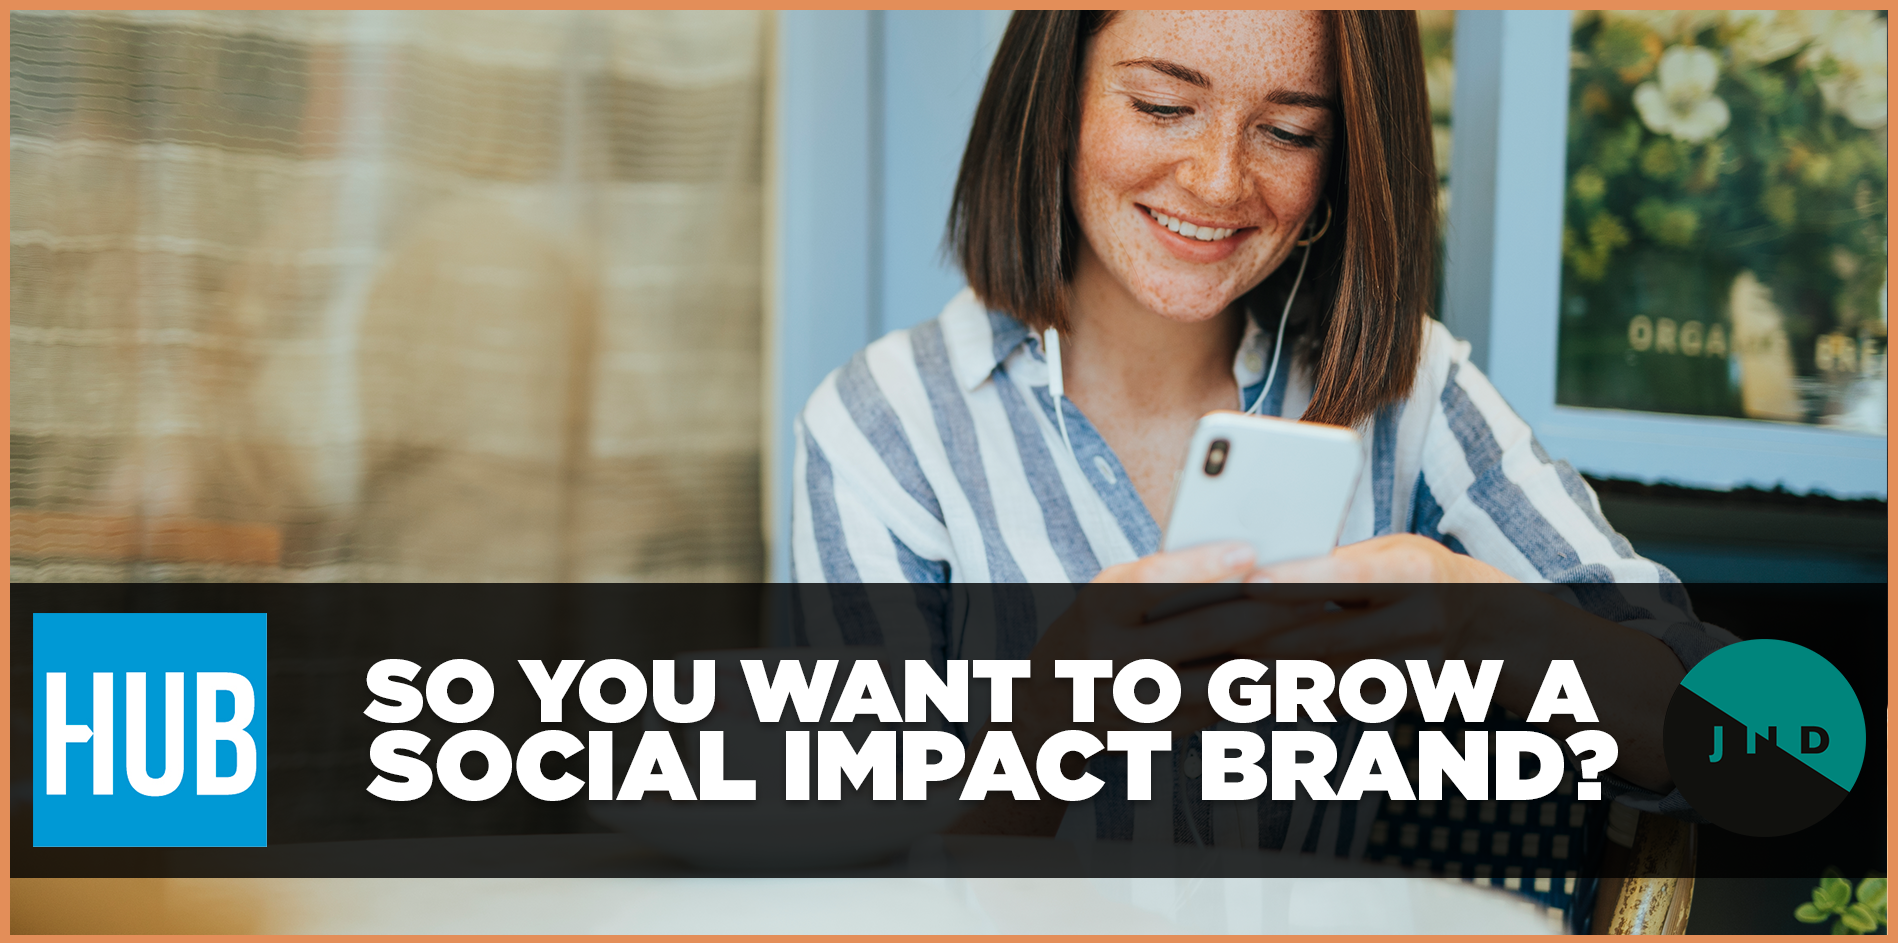 So you want to grow a social impact brand?